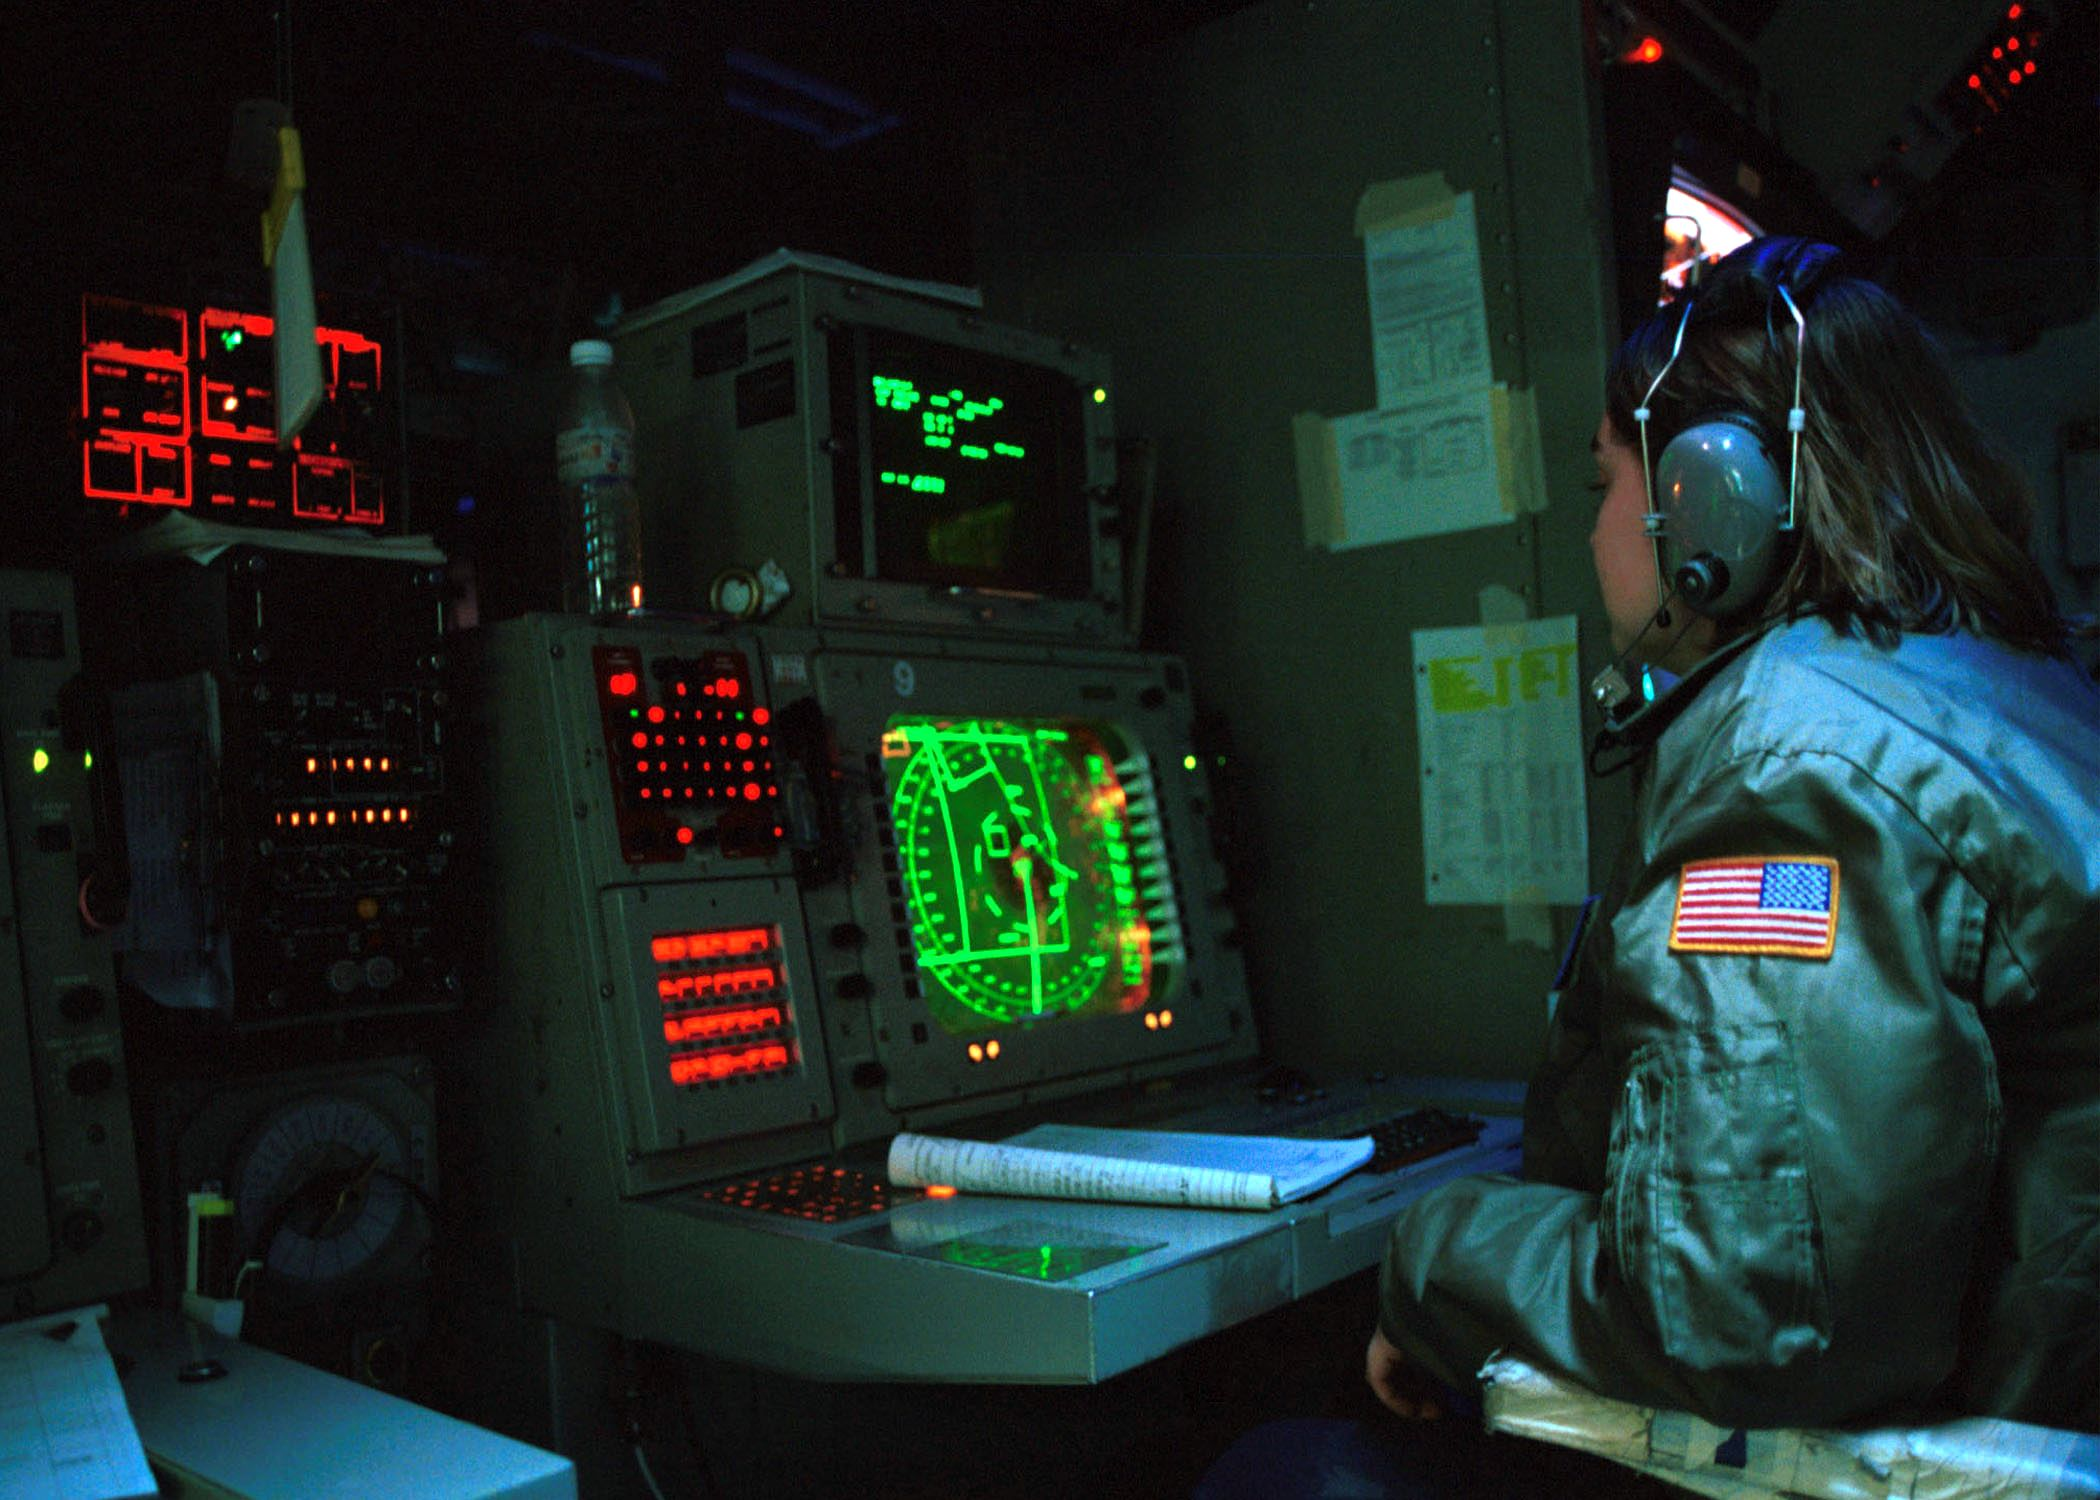 Cic Uss Carlvinson 2001 Operations Room Wikipedia The Free